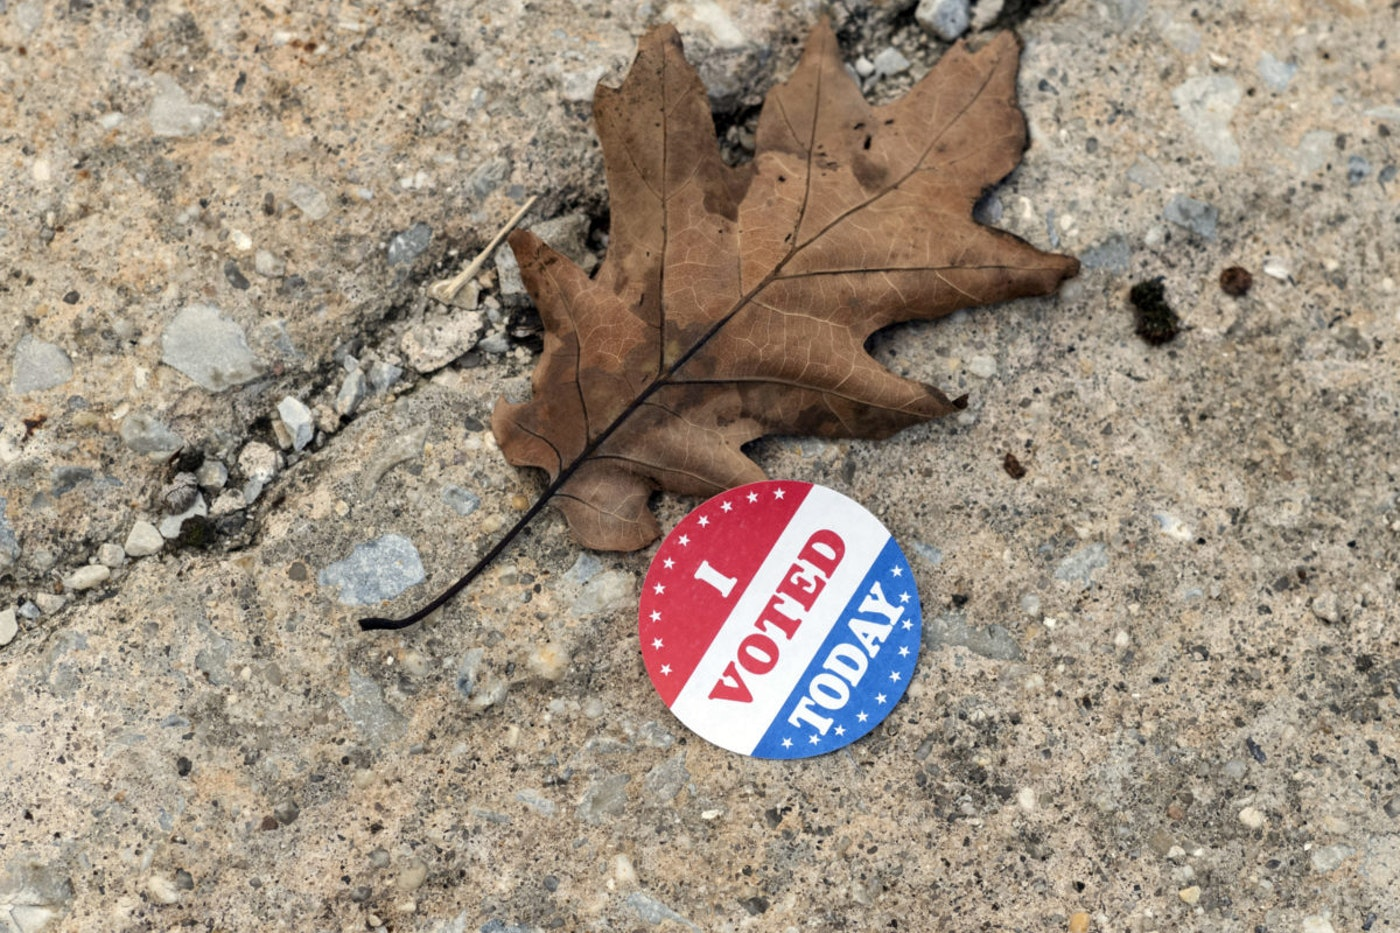 A discarded voting sticker lies on the ground at a satellite election office at Overbrook High School on Thursday, Oct. 1, 2020, in Philadelphia. (AP Photo/Laurence Kesterson)